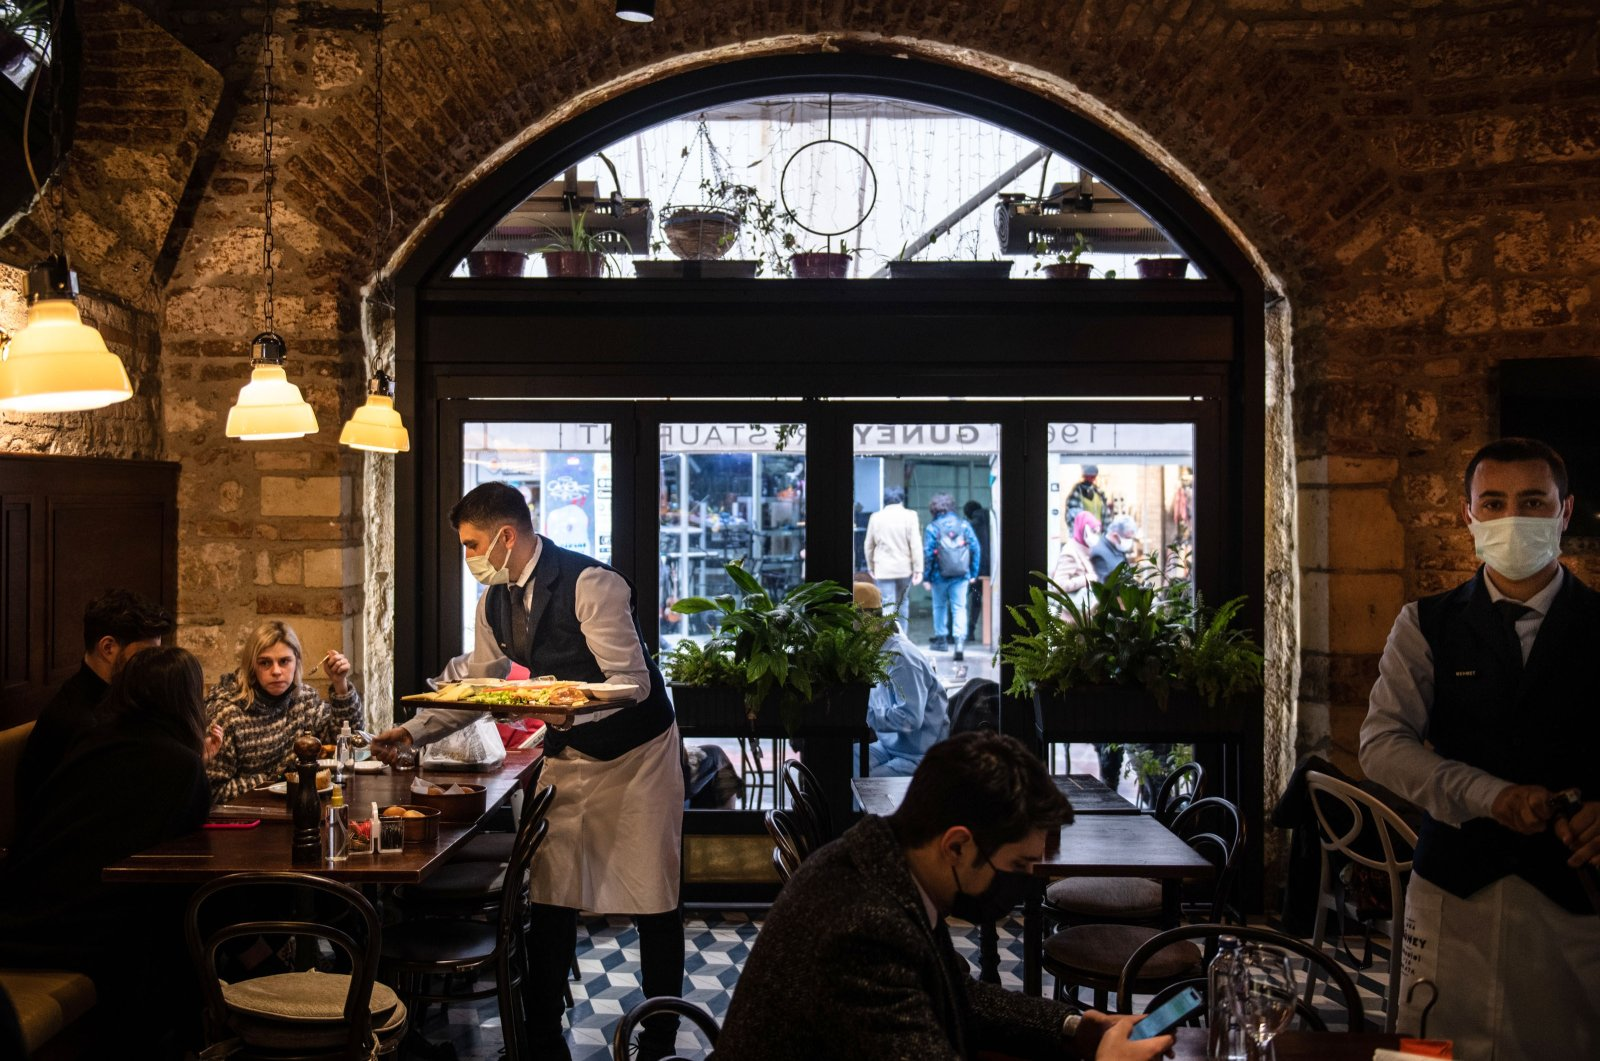 A waiter wearing face mask serves to the customers having lunch at a re-opened restaurant in the Galata district in Istanbul, Turkey, March 02, 2021. (Getty Images)